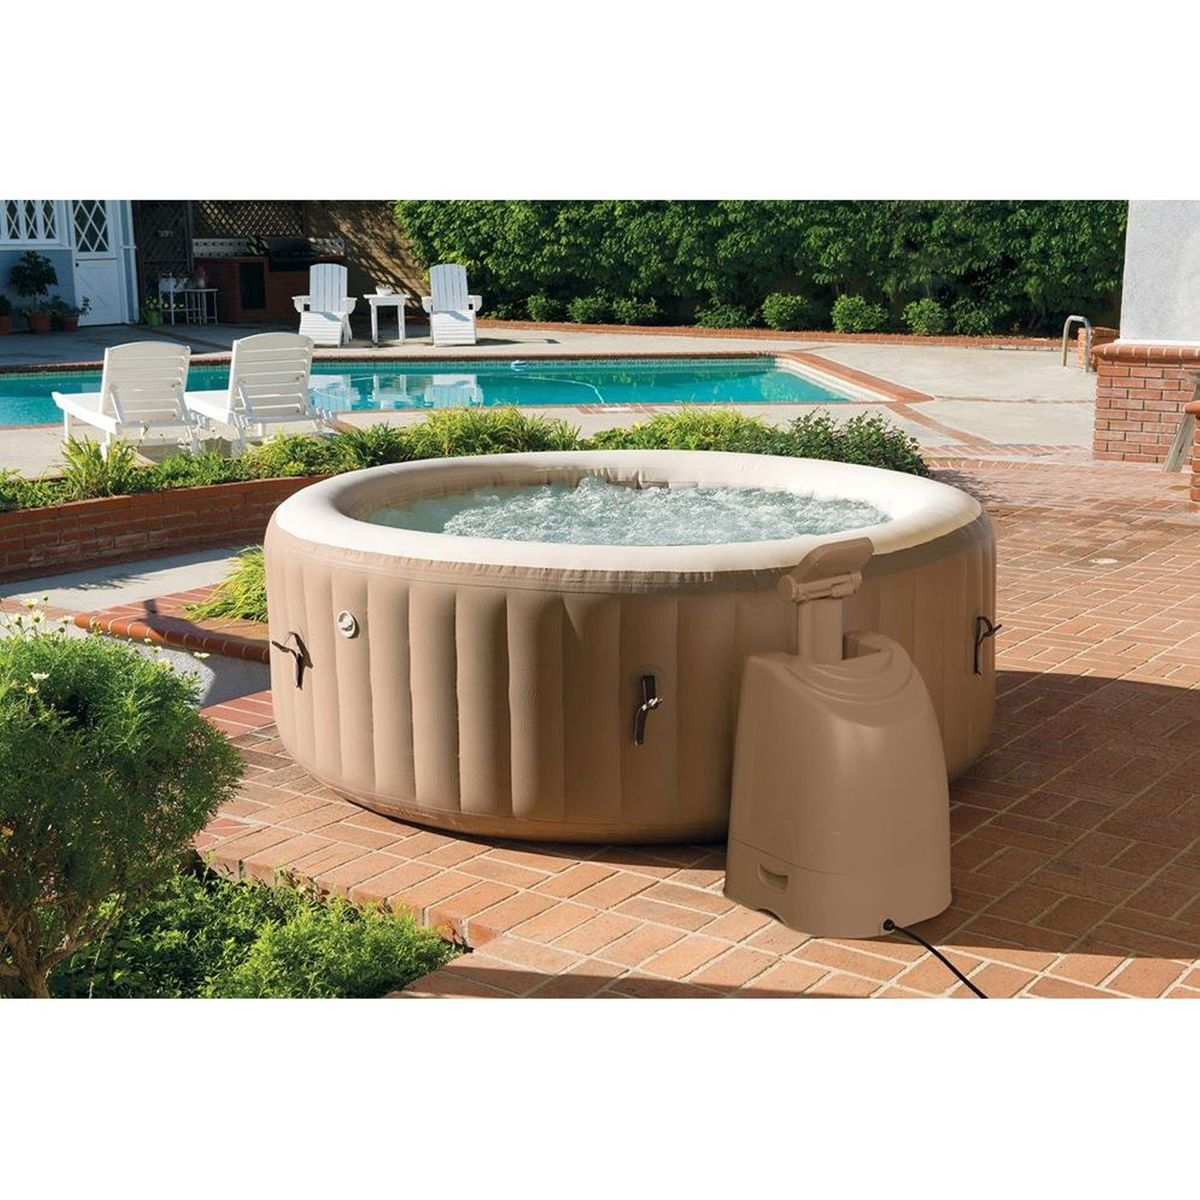 Spa Gonflable Rond 6 Places Avec Images Spa Gonflable Spa Gonflable Intex Spa Intex